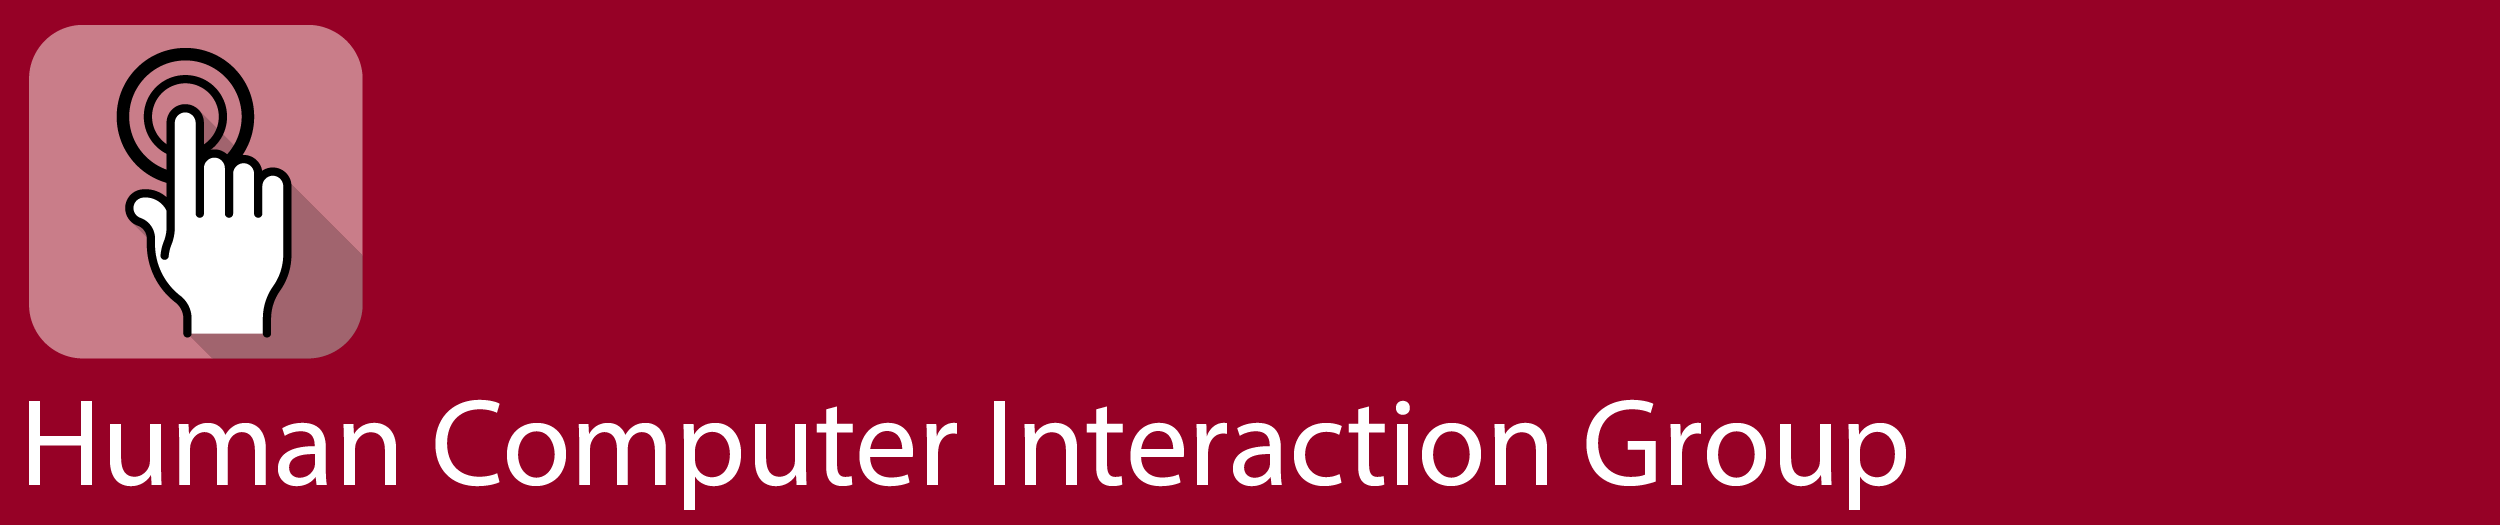 Logo of the Research Group Human Computer Interaction